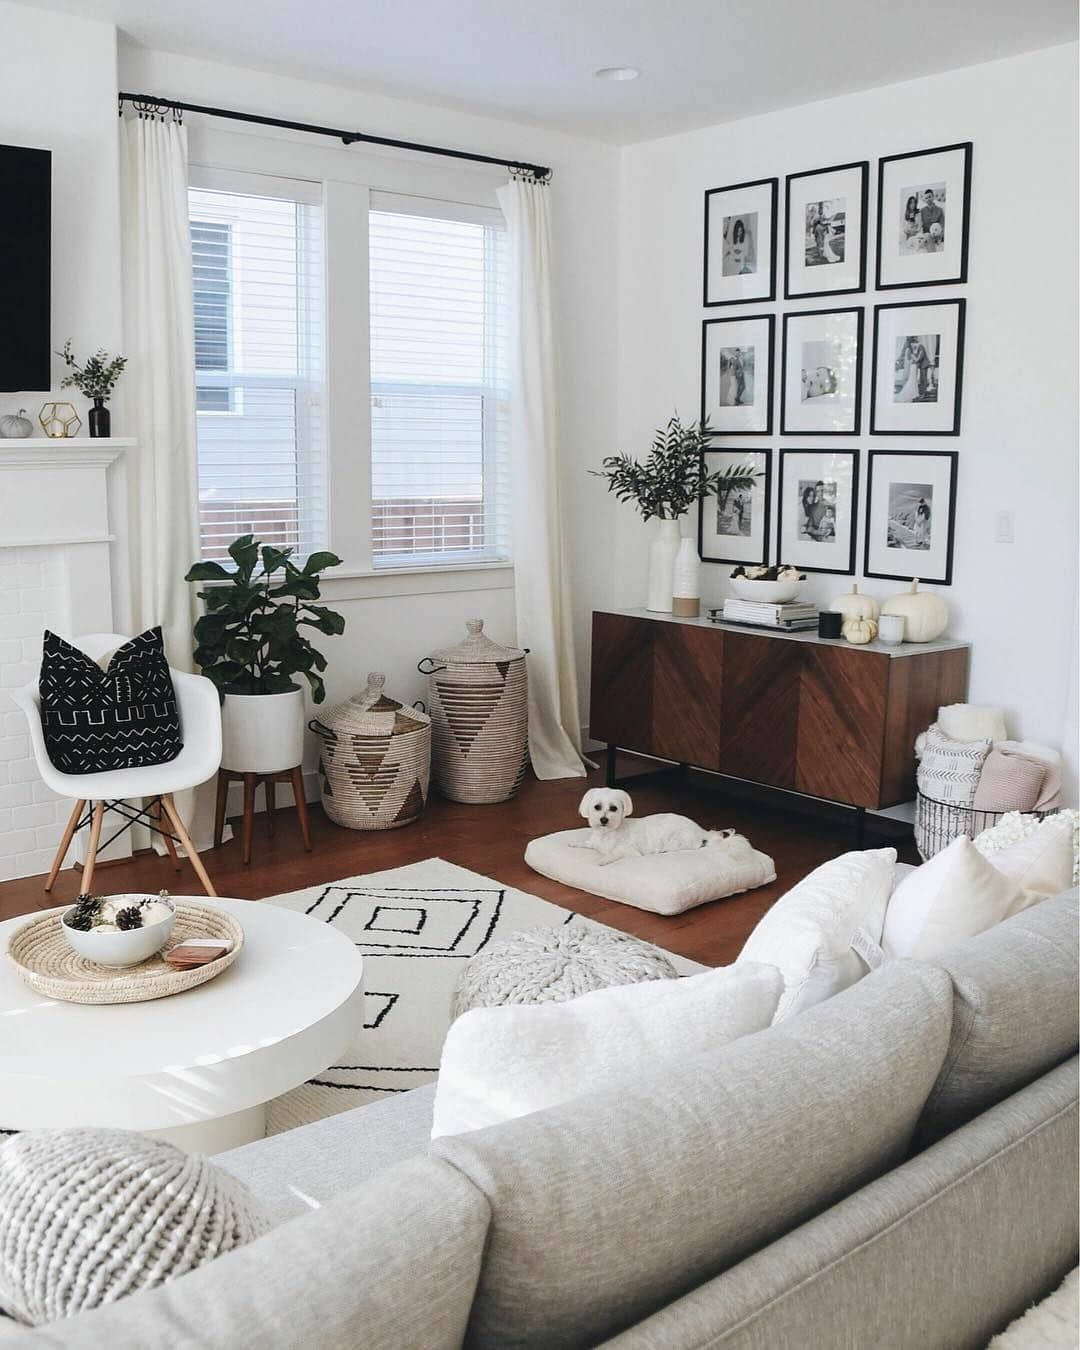 New The 10 All Time Best Home Decor Right Now Ideas By Gerri